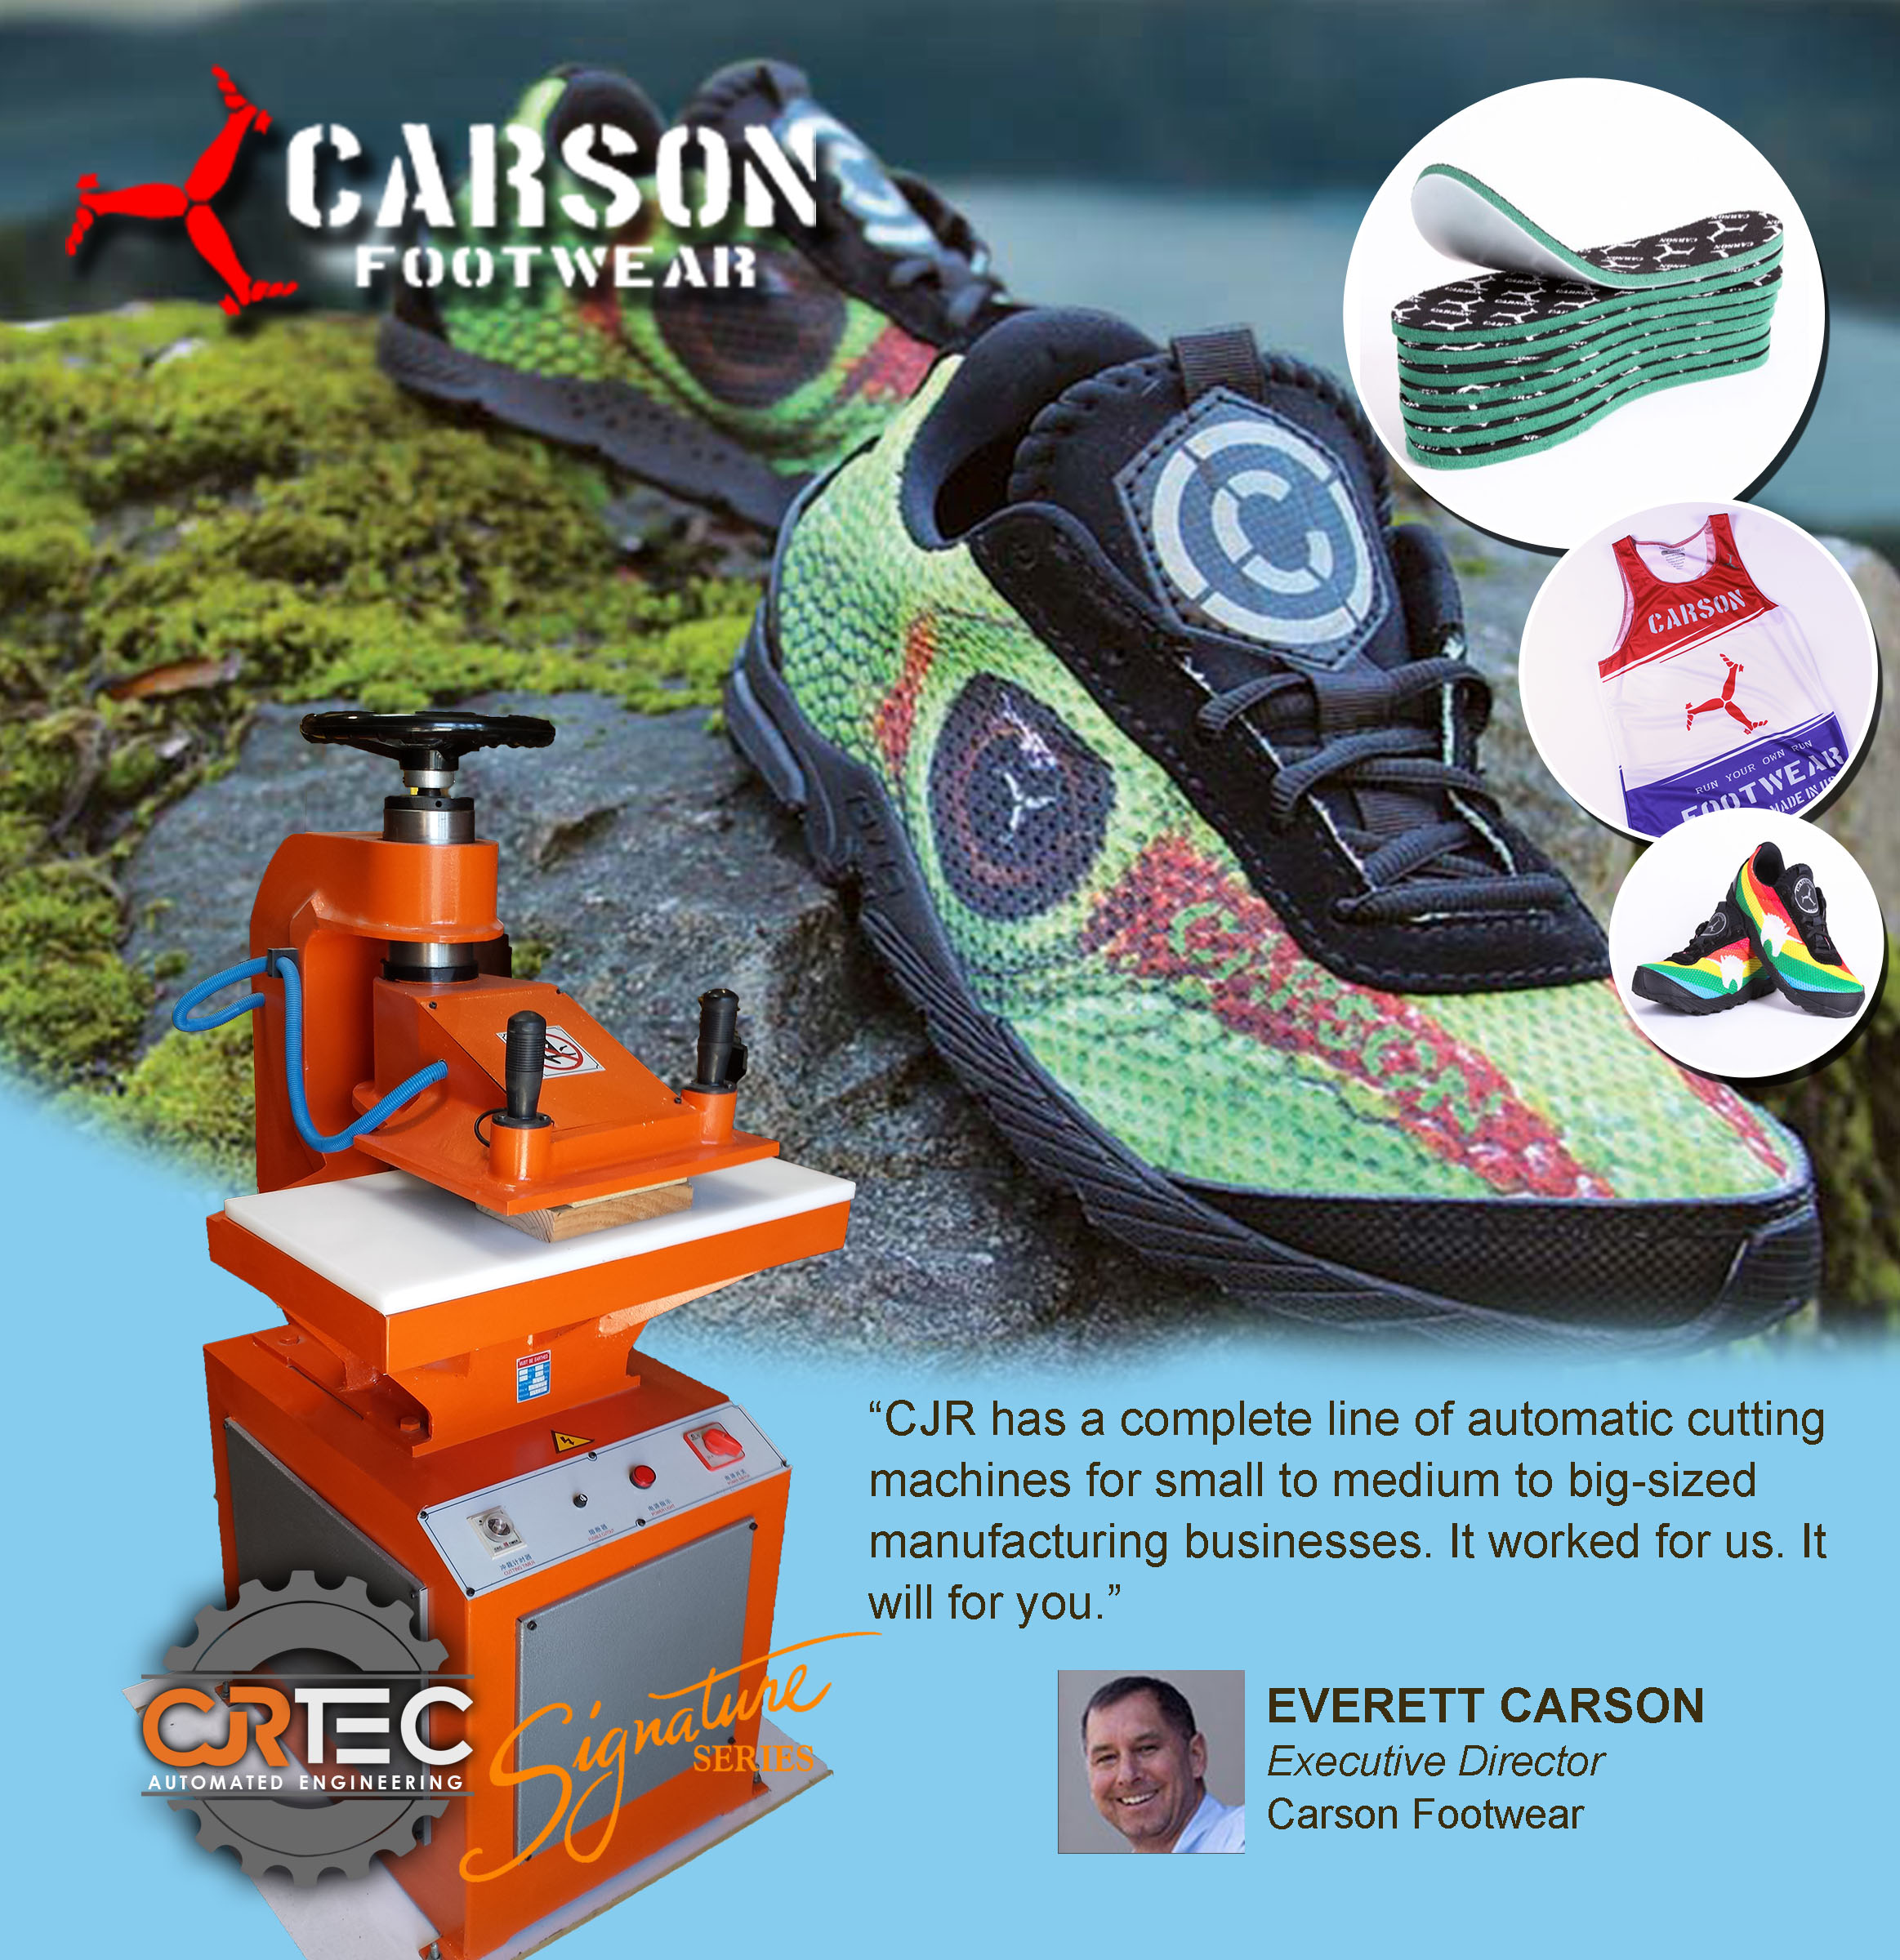 carson footwear uses cjrtec swing arm press